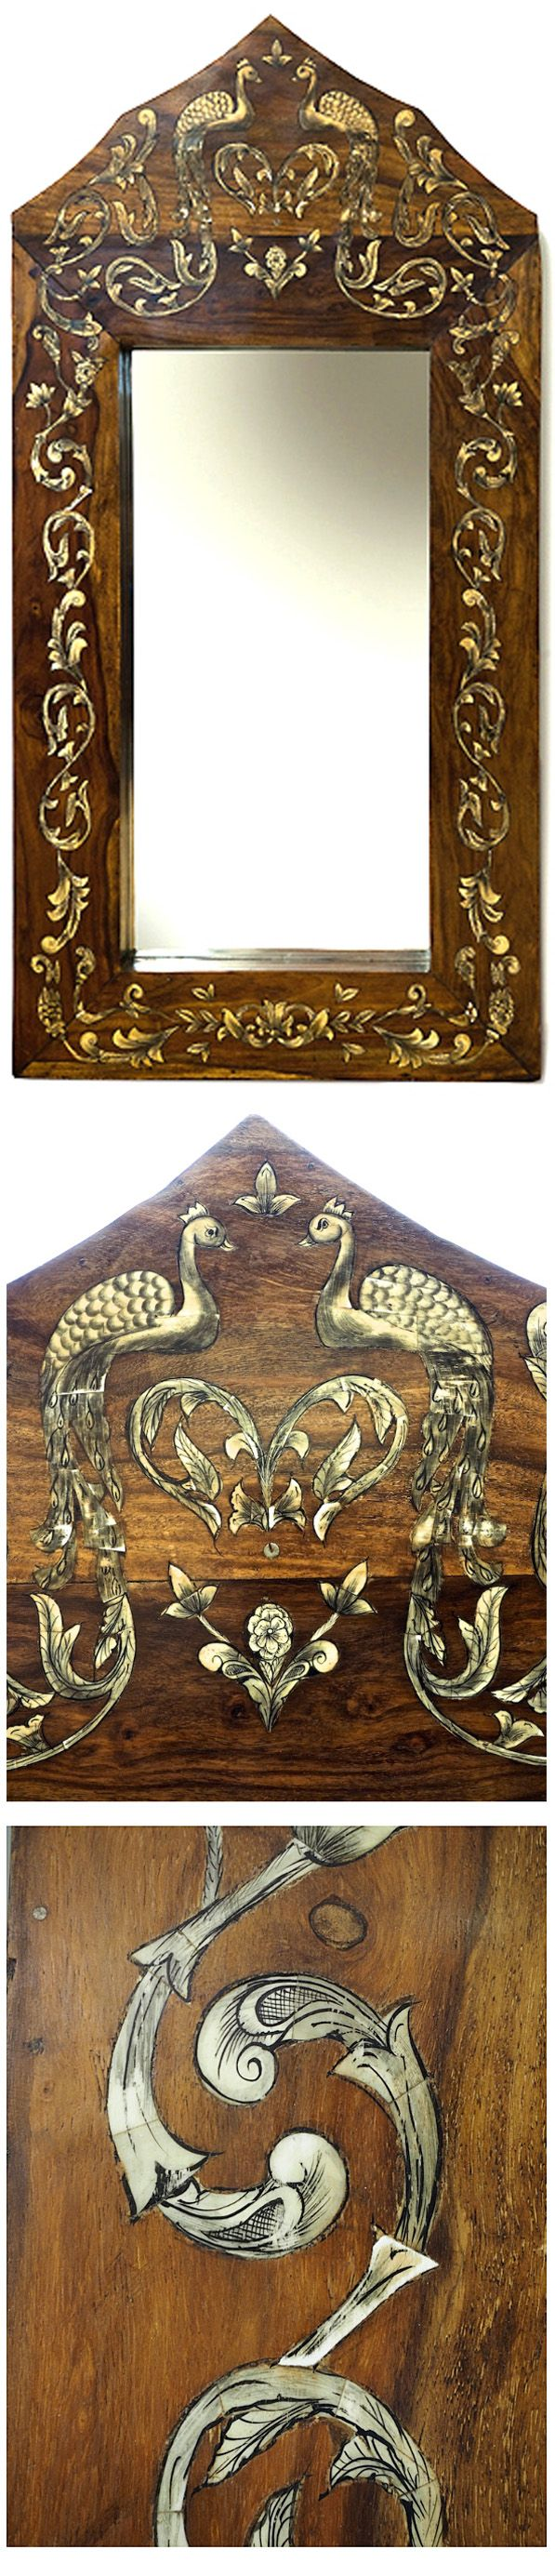 Inlaid Indian mirror with peacocks and floral designs. By from Bringing It All Back Home. http://bringingitallbackhome.co.uk/shop/inlaid-arched-mirror/